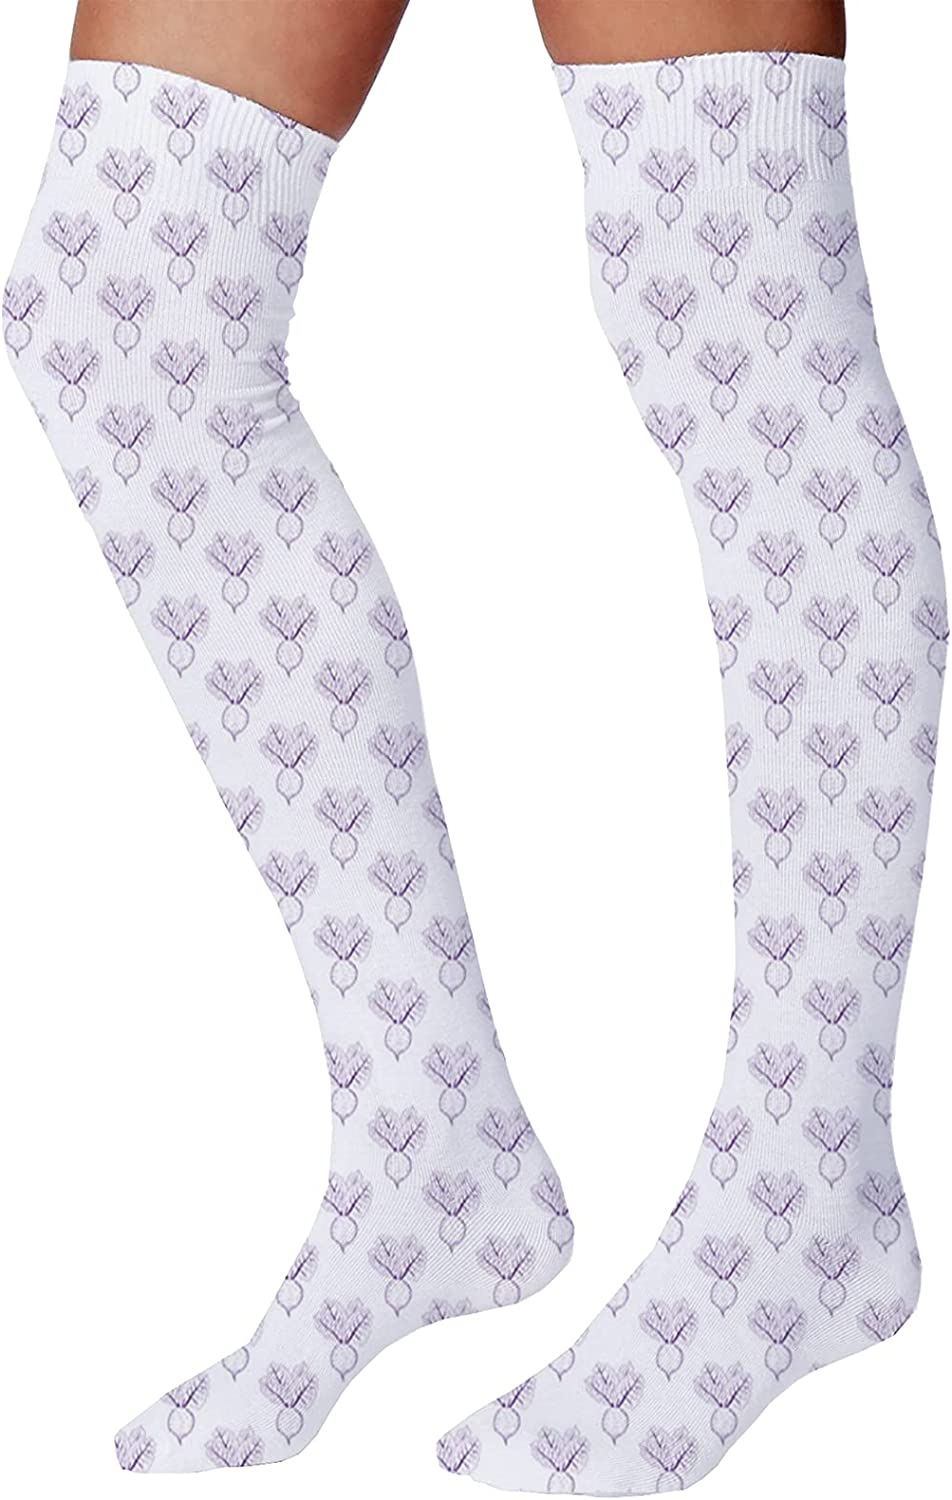 Men's and Women's Fun Socks,Monochrome Repeating Simplistic Food Pattern with Sketchy Drawn Beetroots